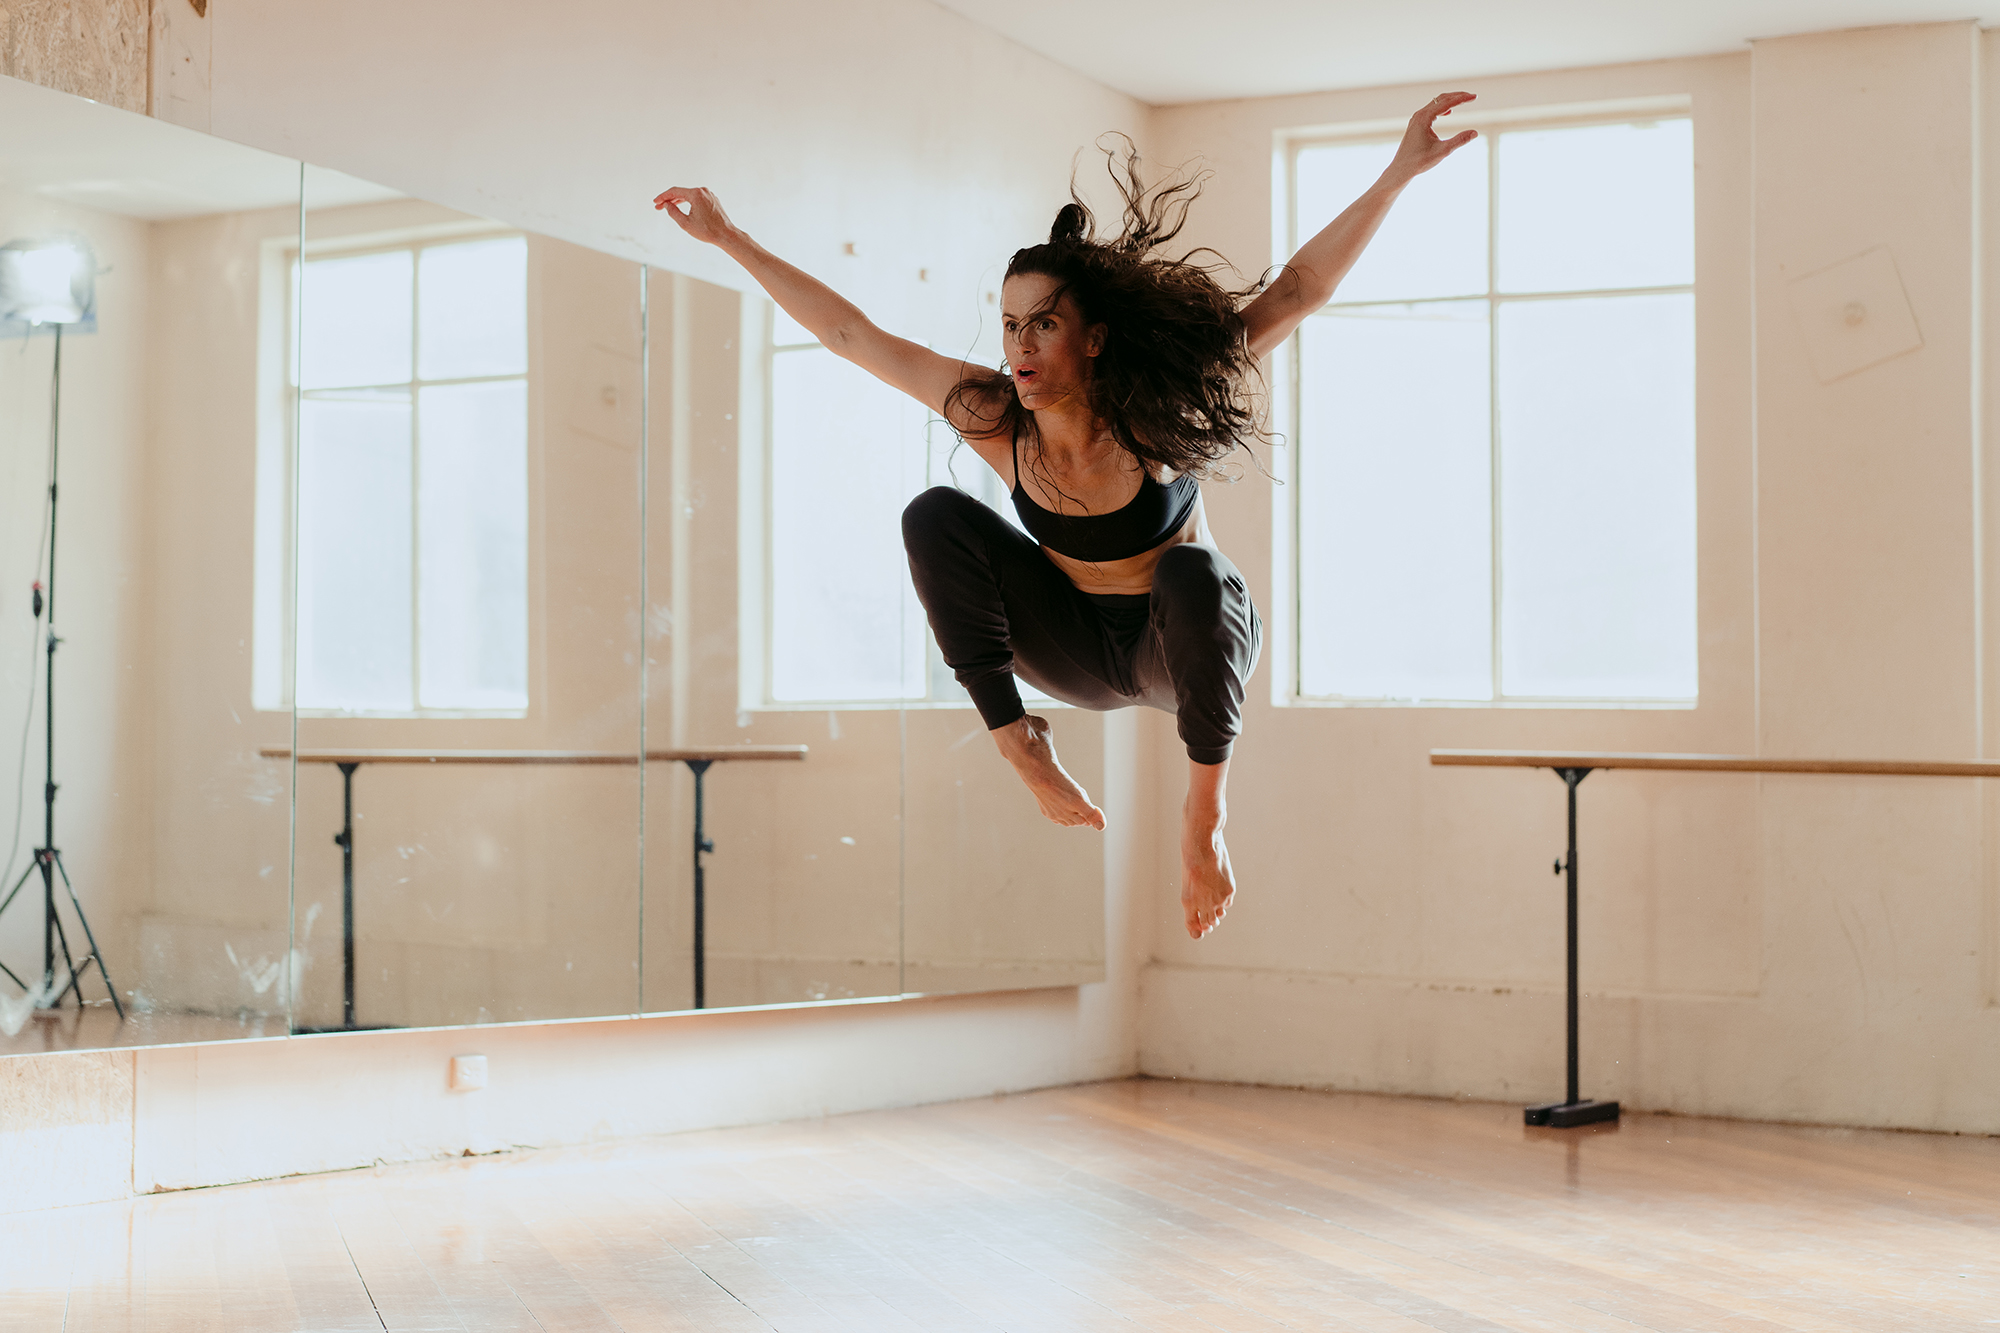 A female in a bright dance studio jumping energetically in the air